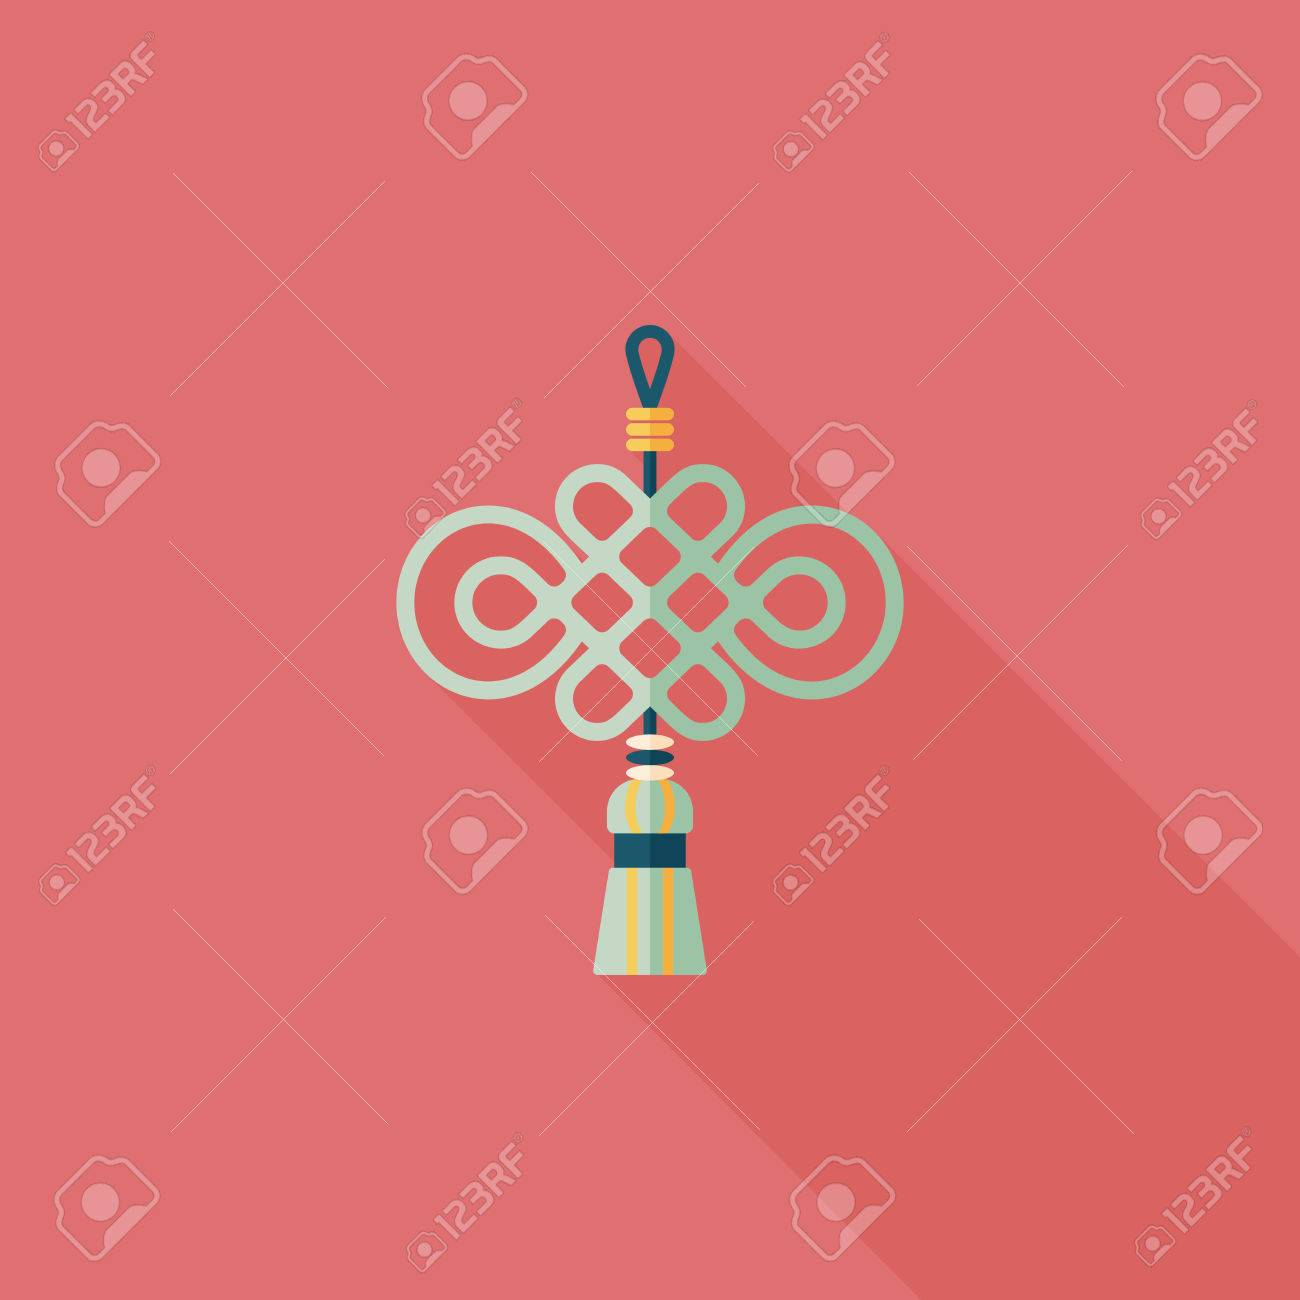 Chinese New Year flat icon with long shadow, lucky Chinese knot - 32369831